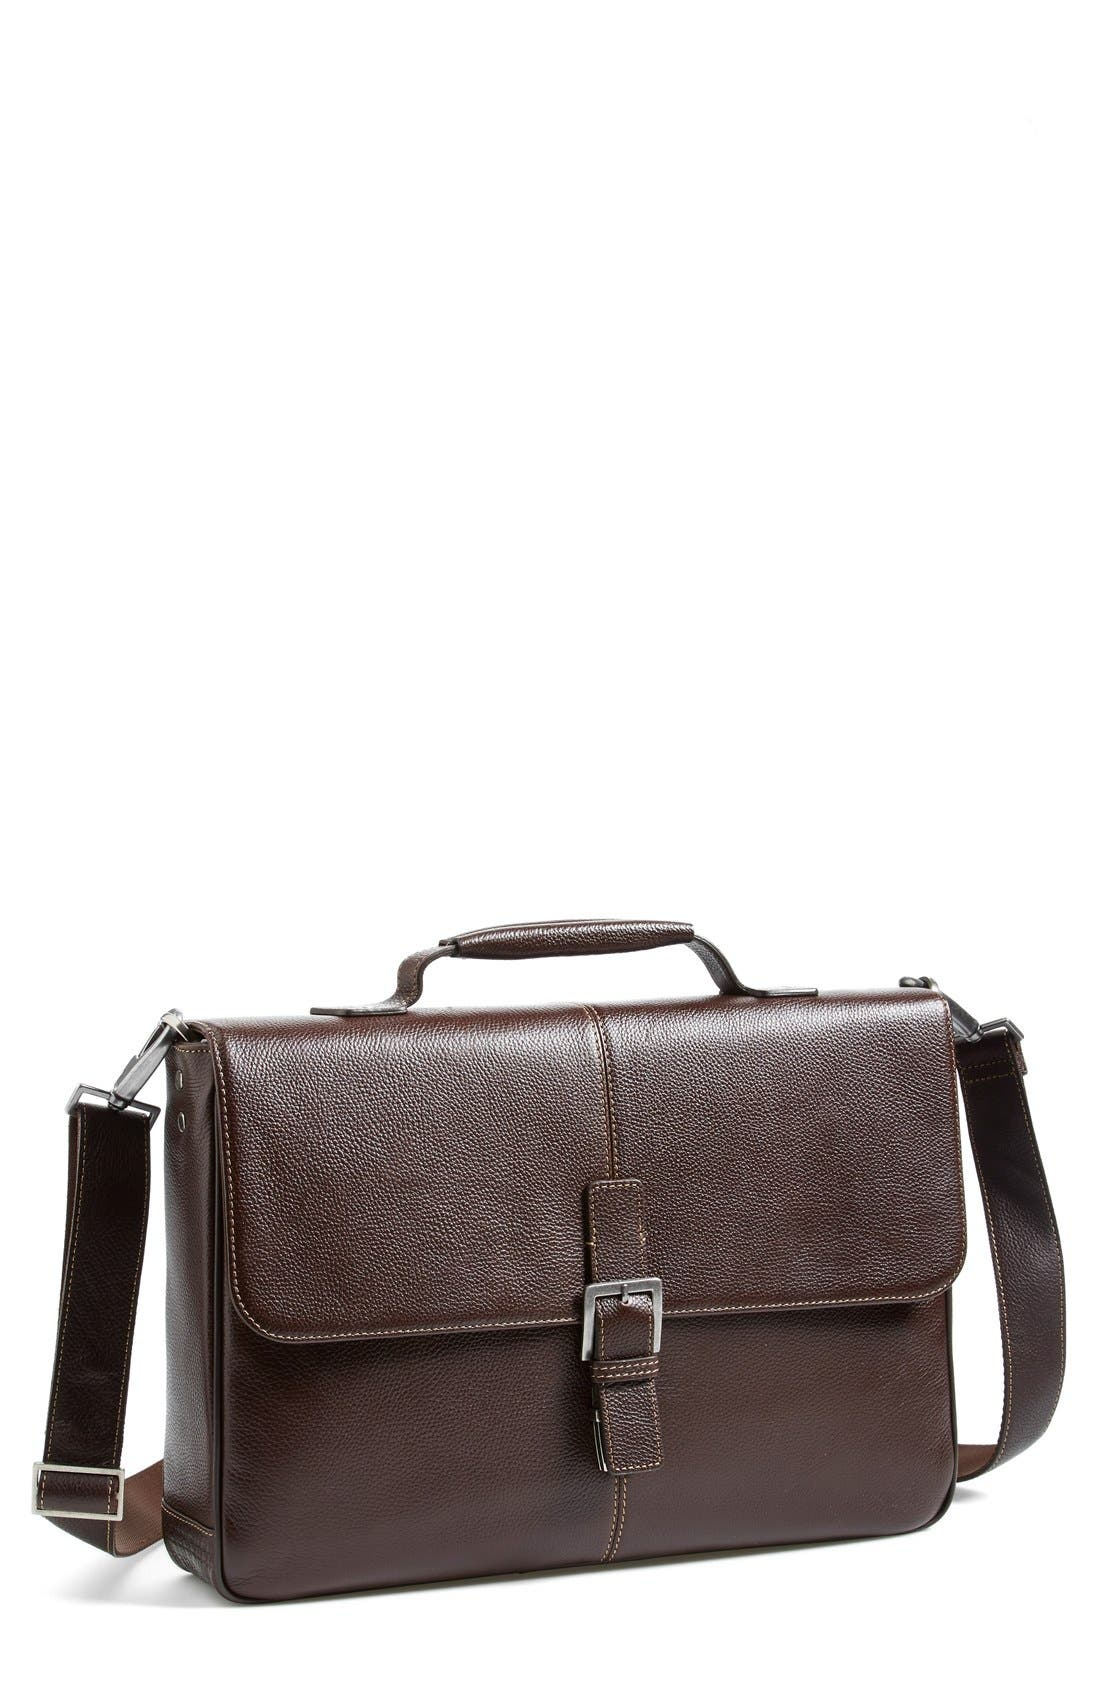 'Tyler' Briefcase,                             Main thumbnail 1, color,                             Coffee